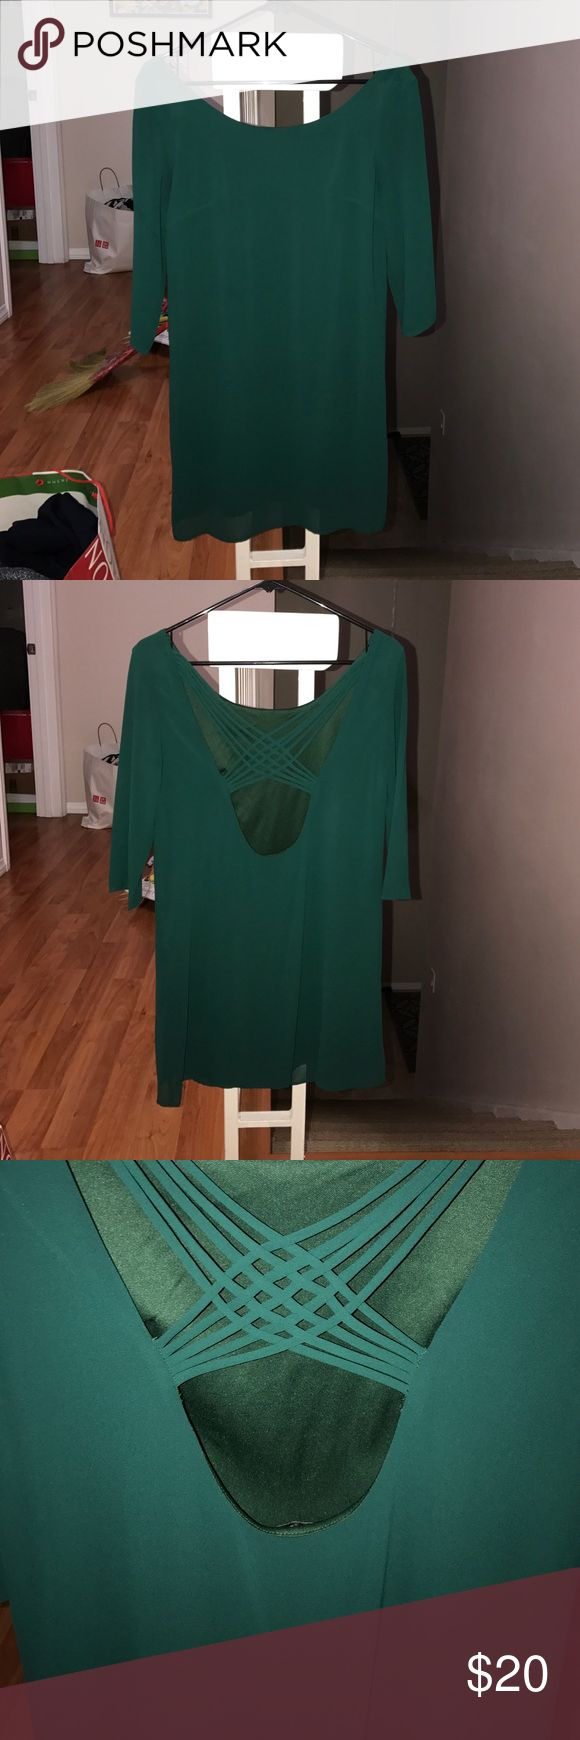 Tobi Green Dress Deep Green Dress, strappy in the back, quarter-sleeve dress perfect for semi-formal occasions or night outs with some friends! Tobi Dresses Mini